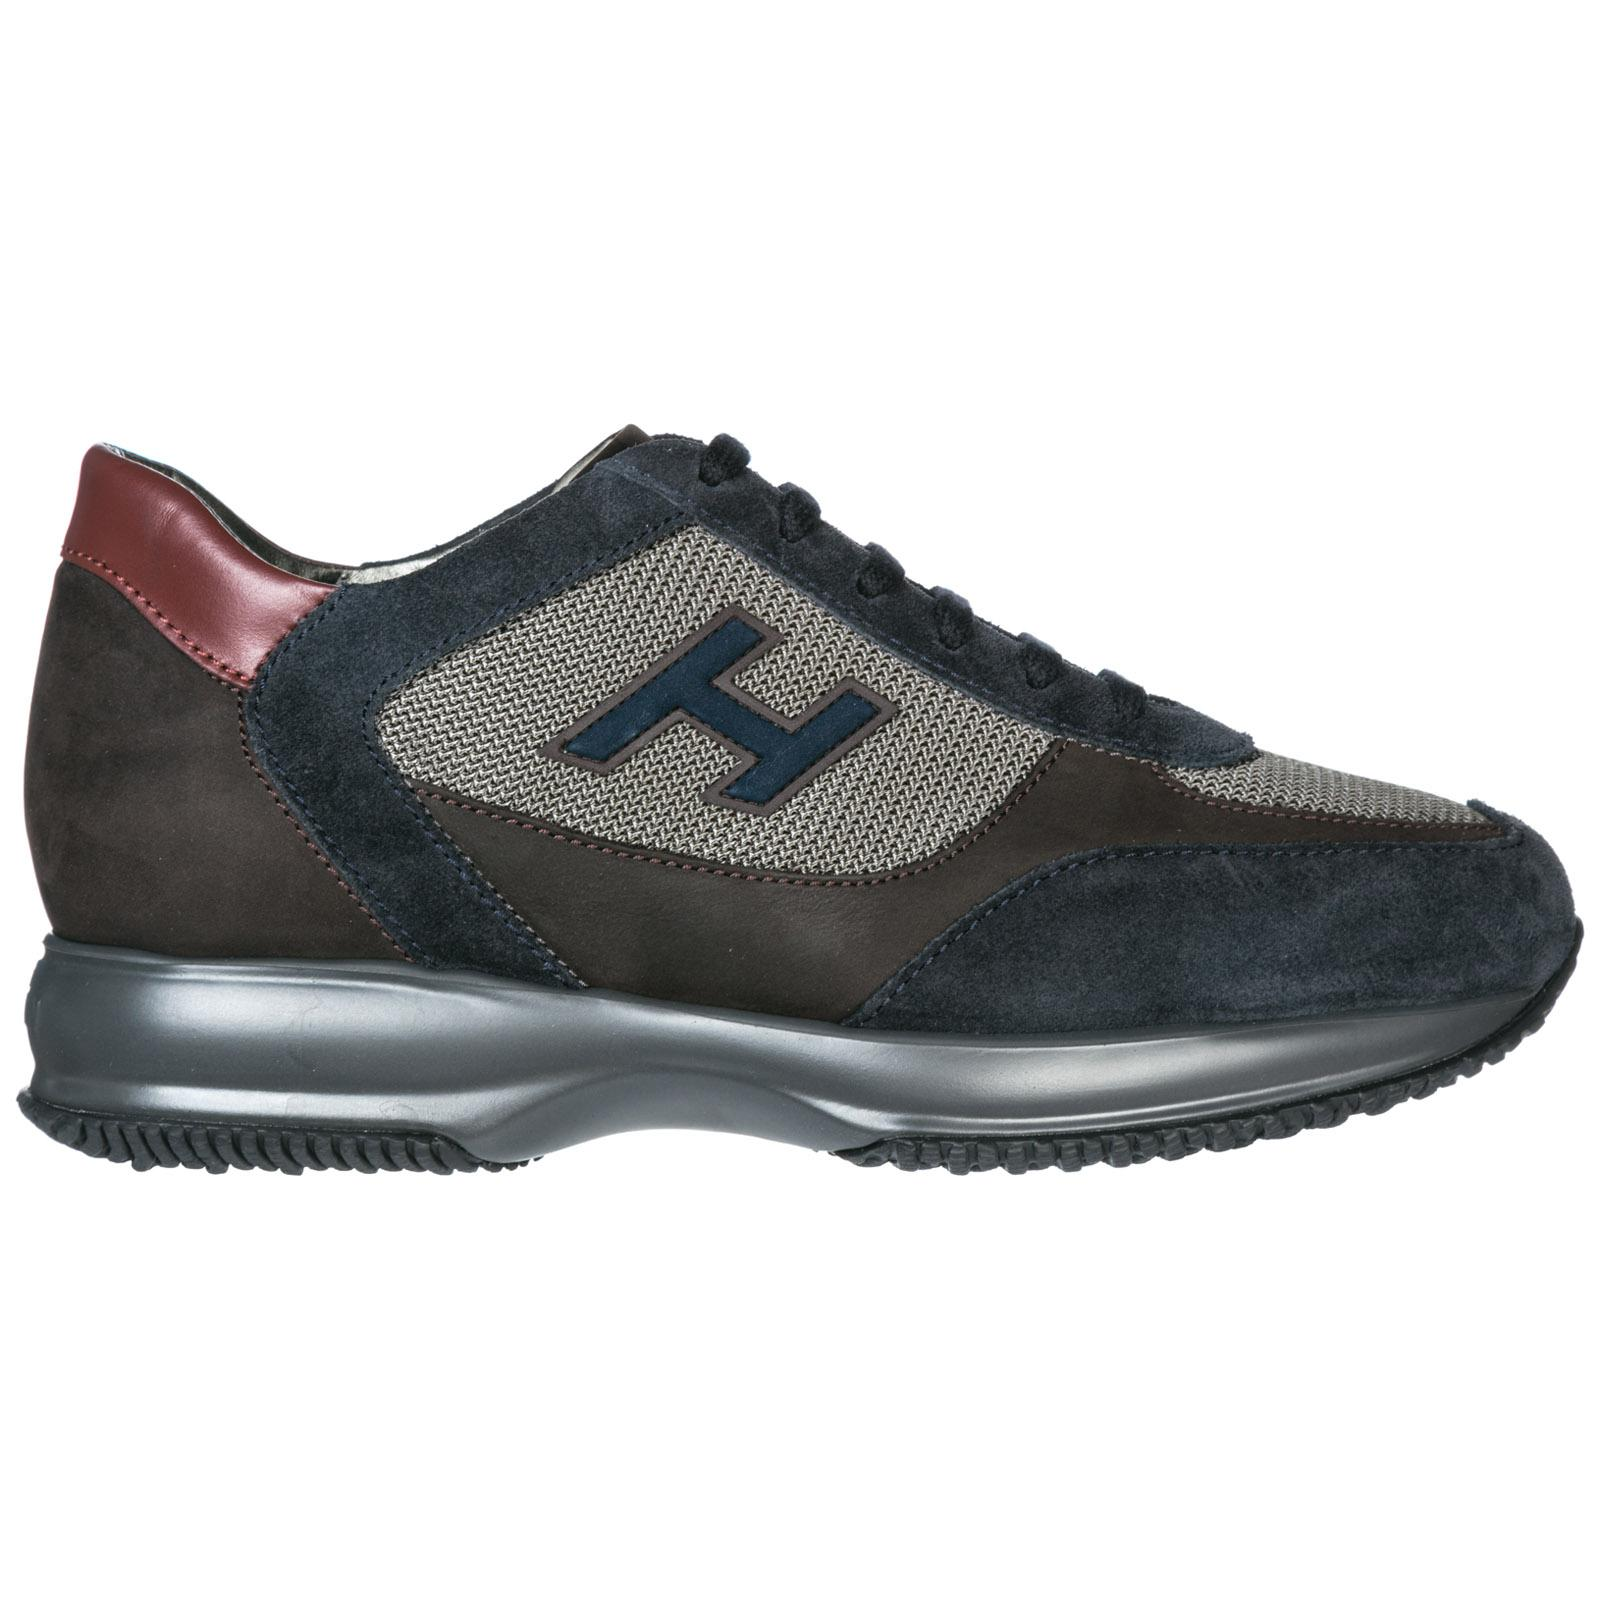 a5fc69fa6ed Hogan Men's Shoes Suede Trainers Sneakers Interactive In Blue | ModeSens